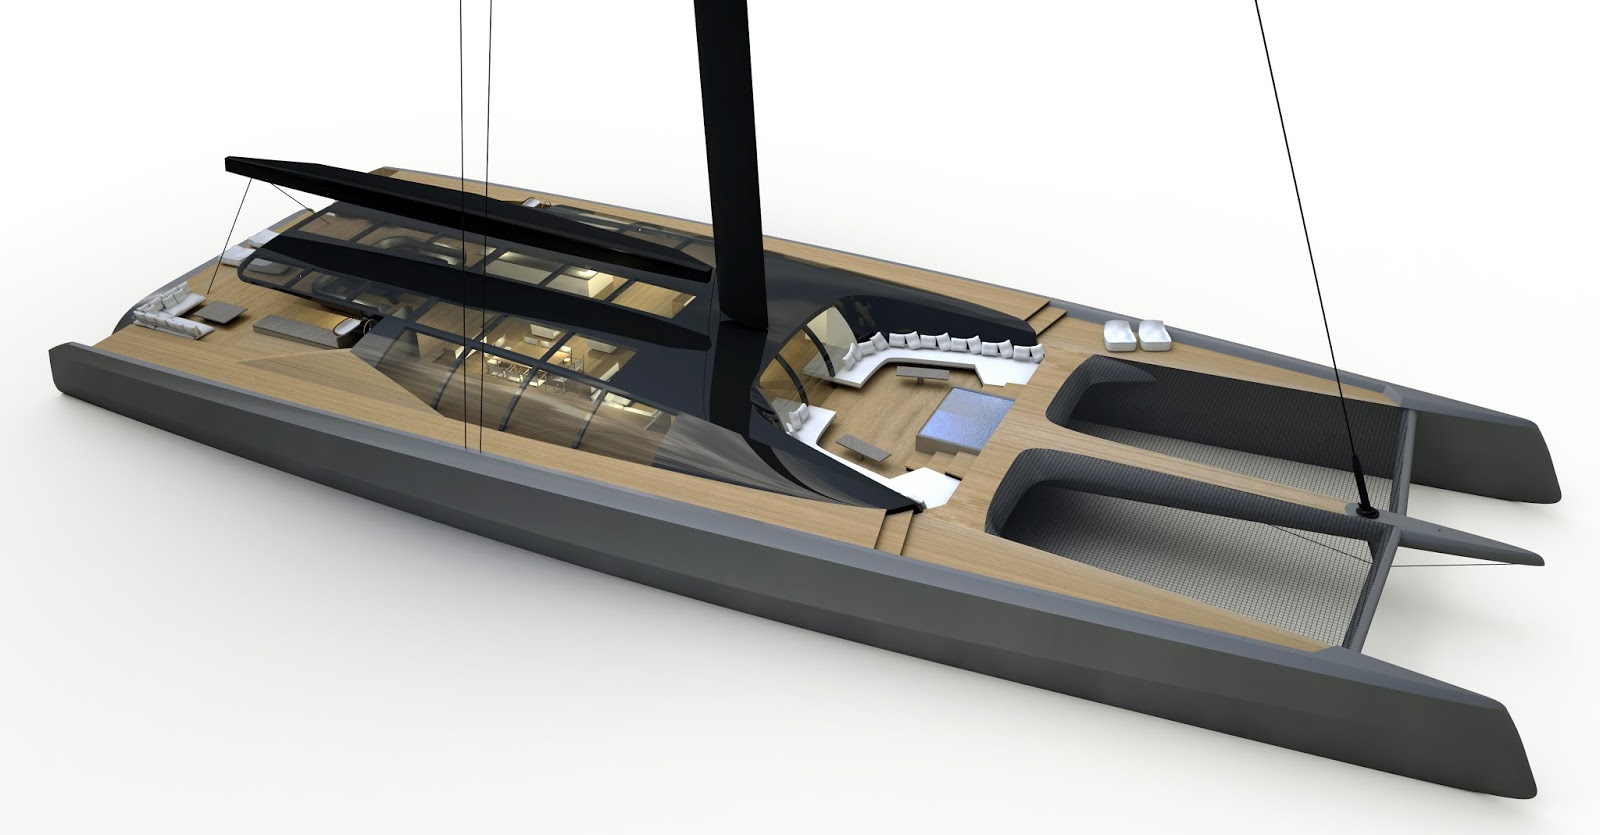 40 Meter To Feet Mitch Booth S 50mts Superyacht Project The Blackcat